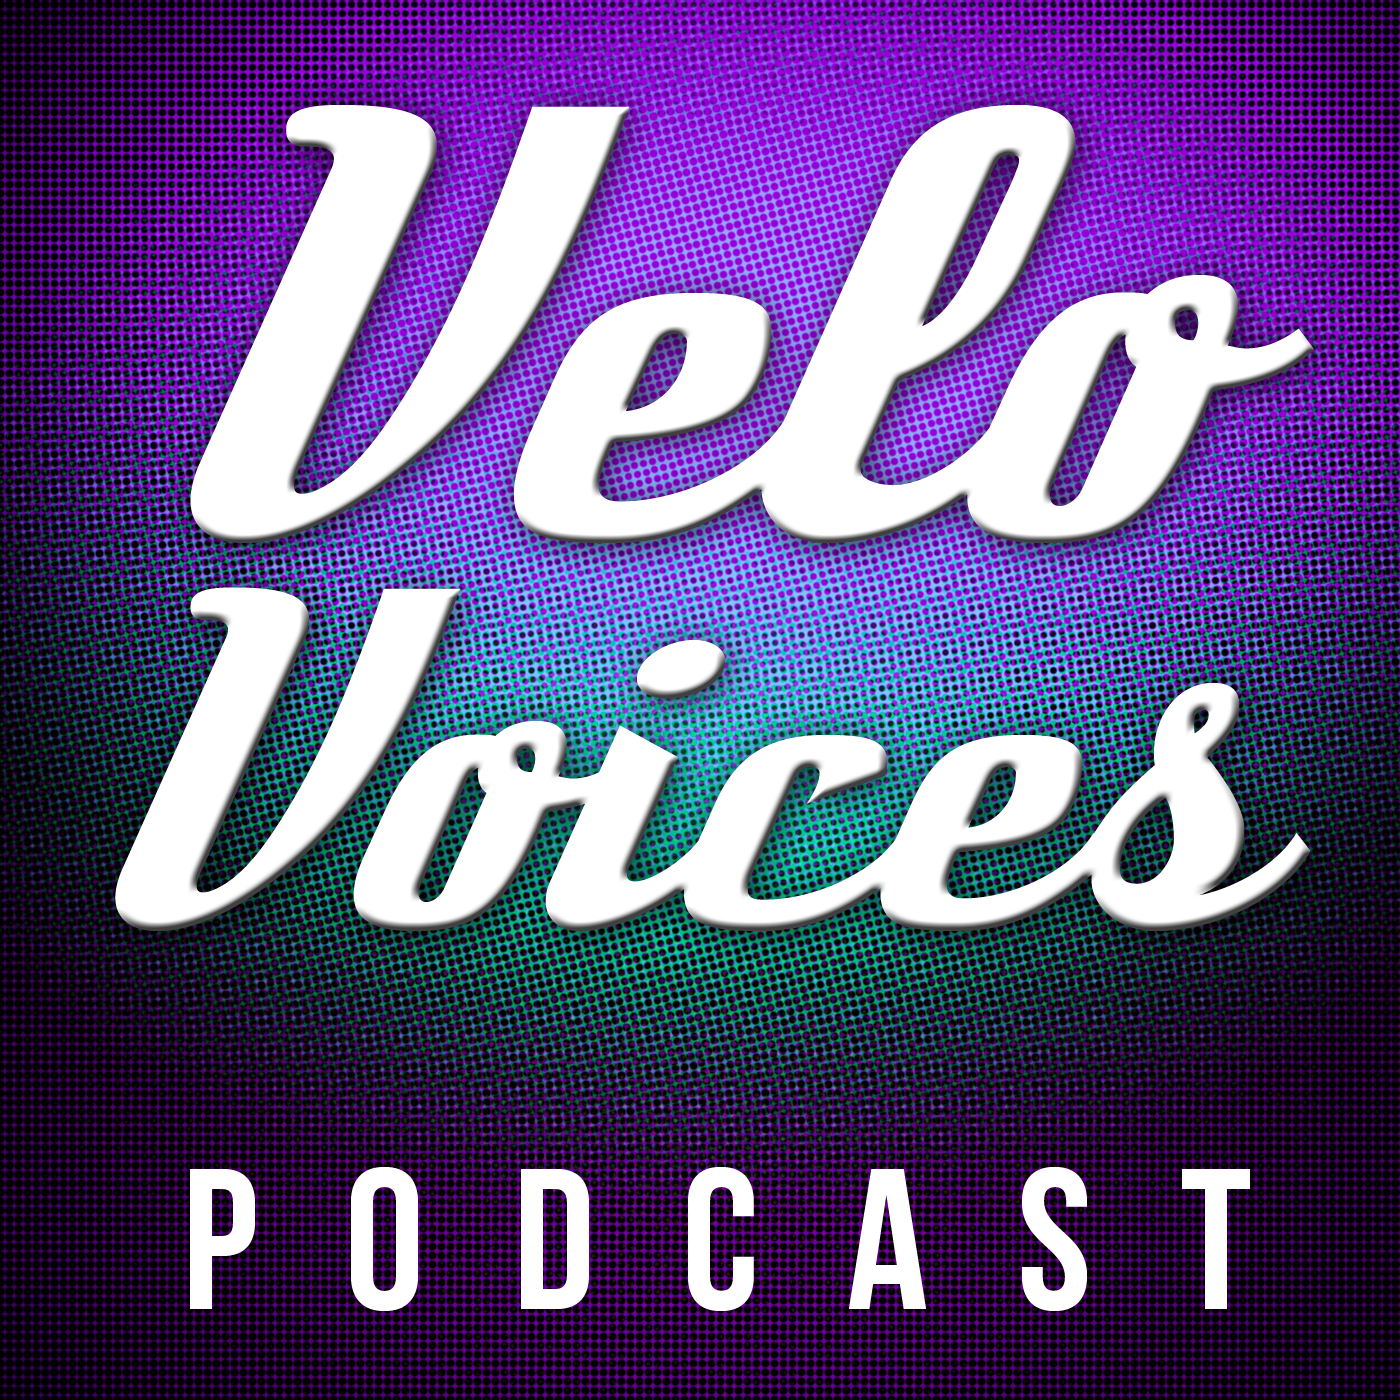 Podcast – VeloVoices